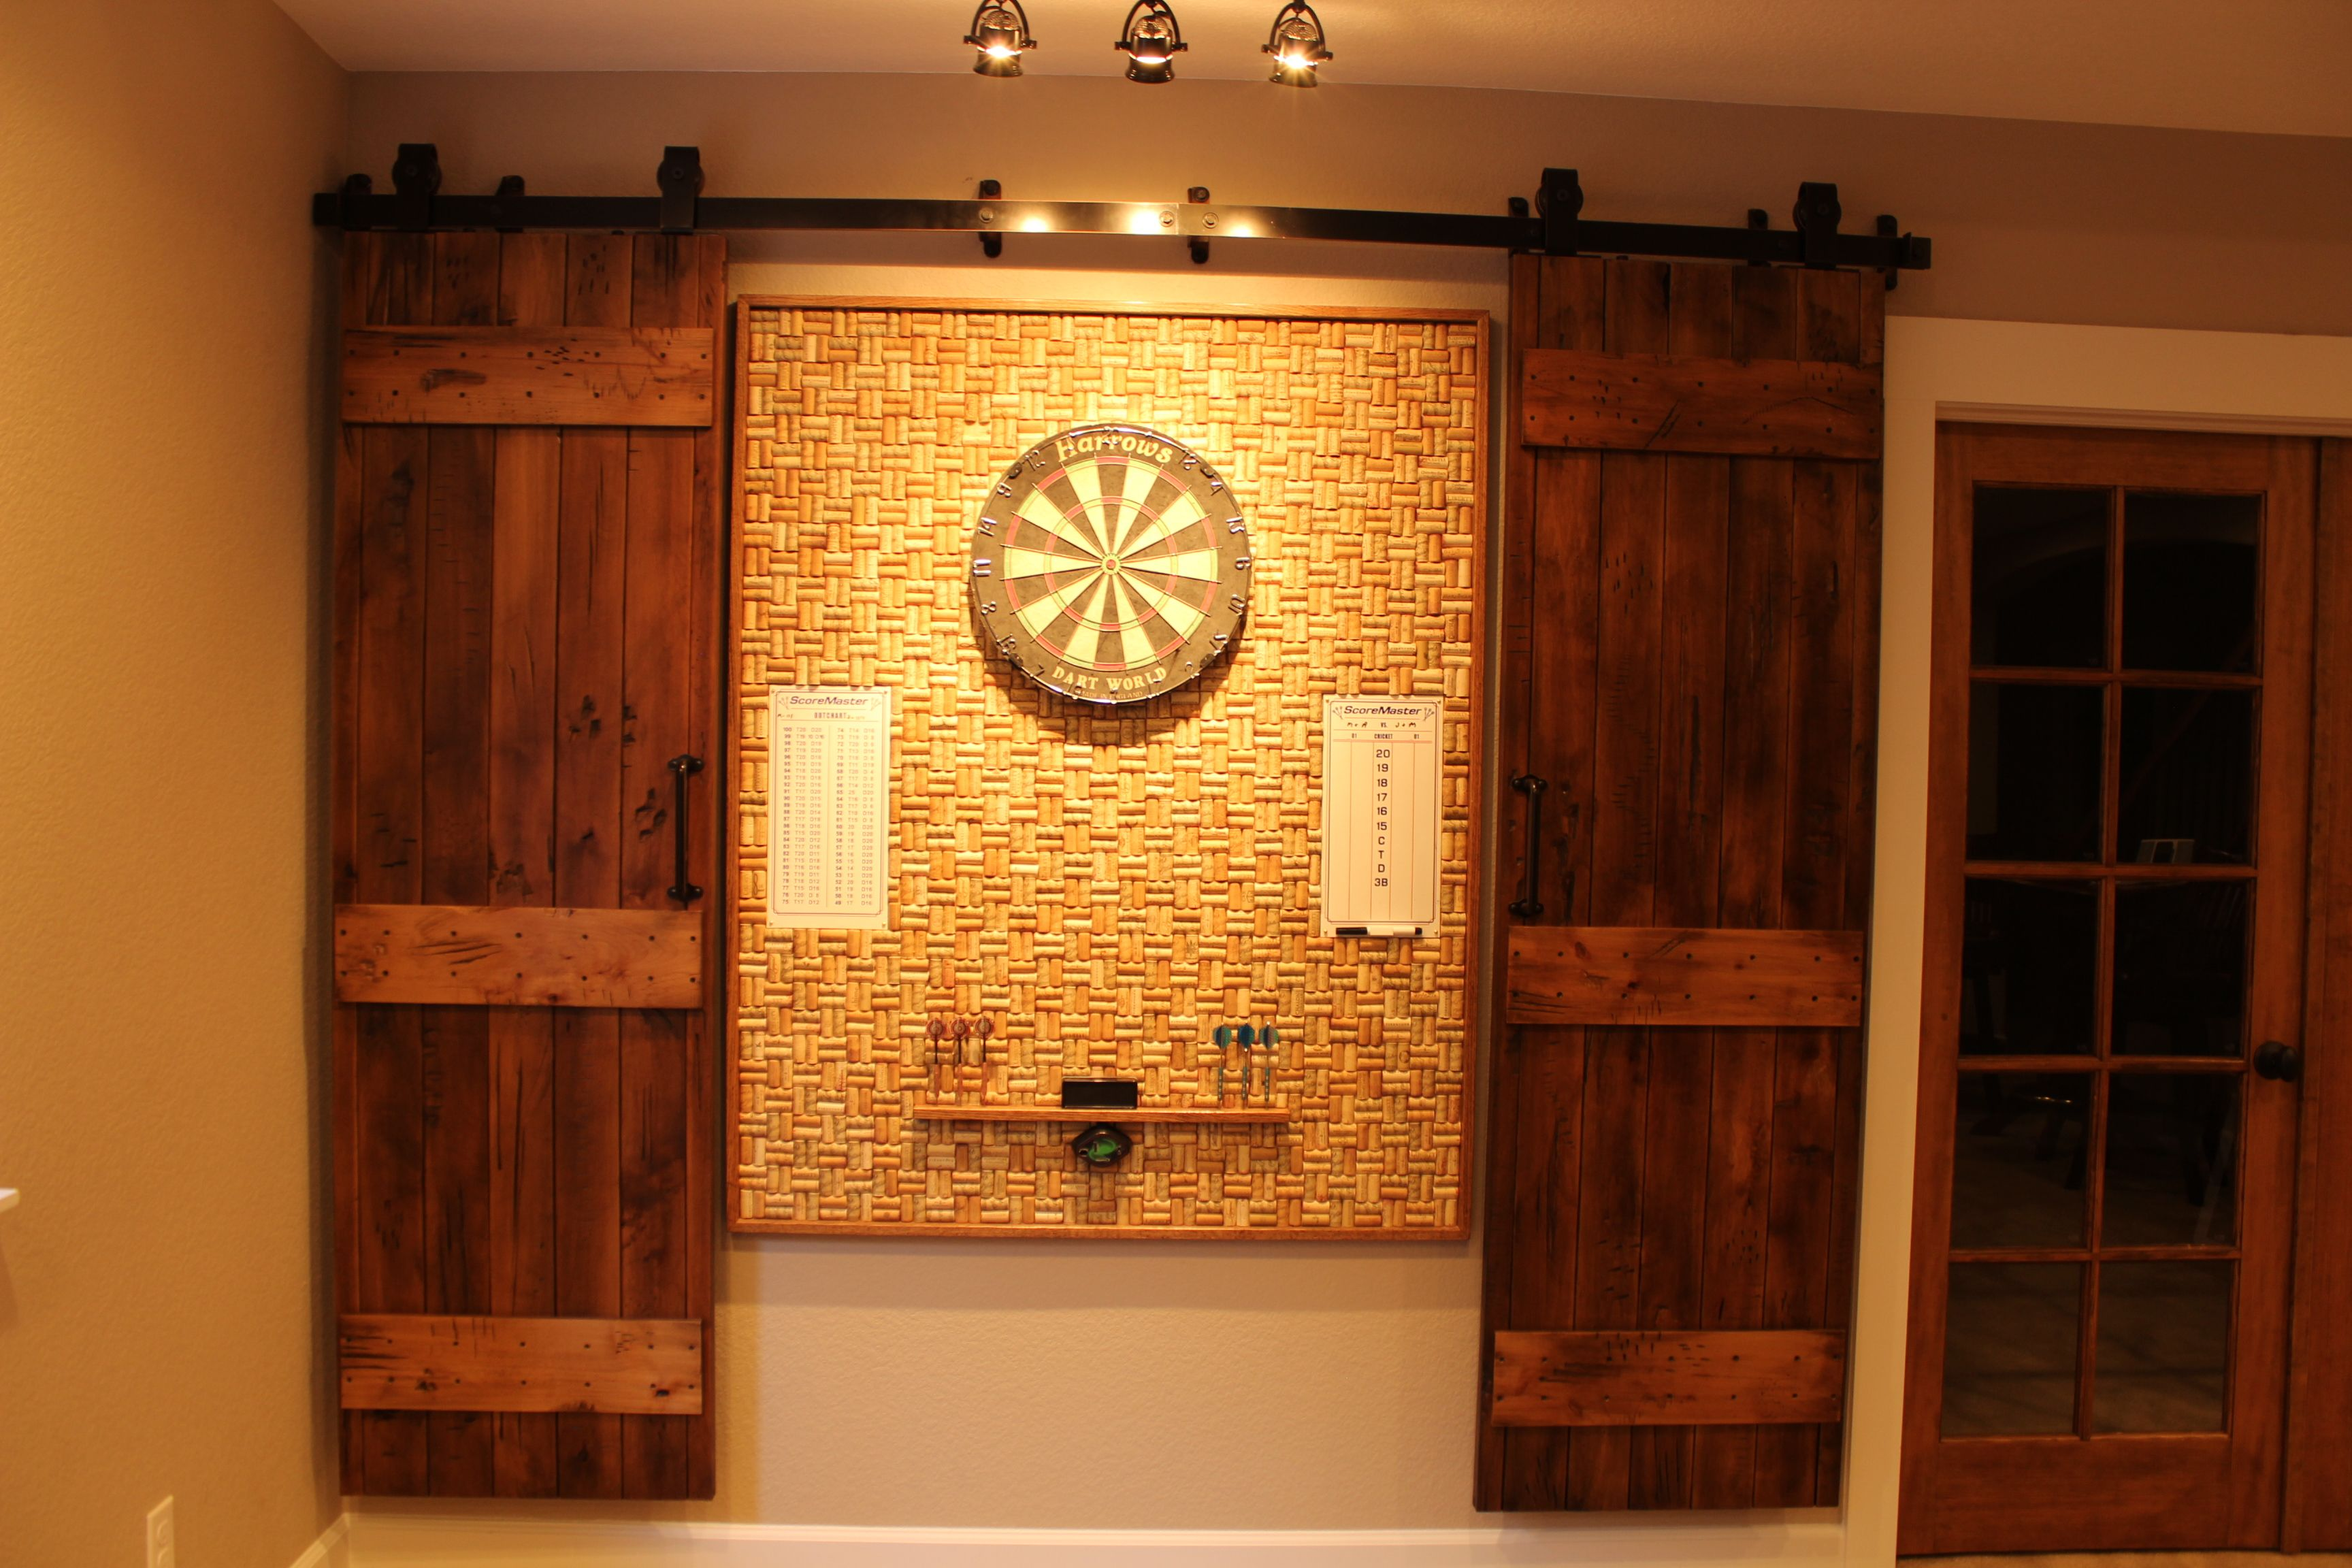 Barn Board Kitchen Cabinets Wine Cork Dartboard Hidden With Barn Doors Projects To